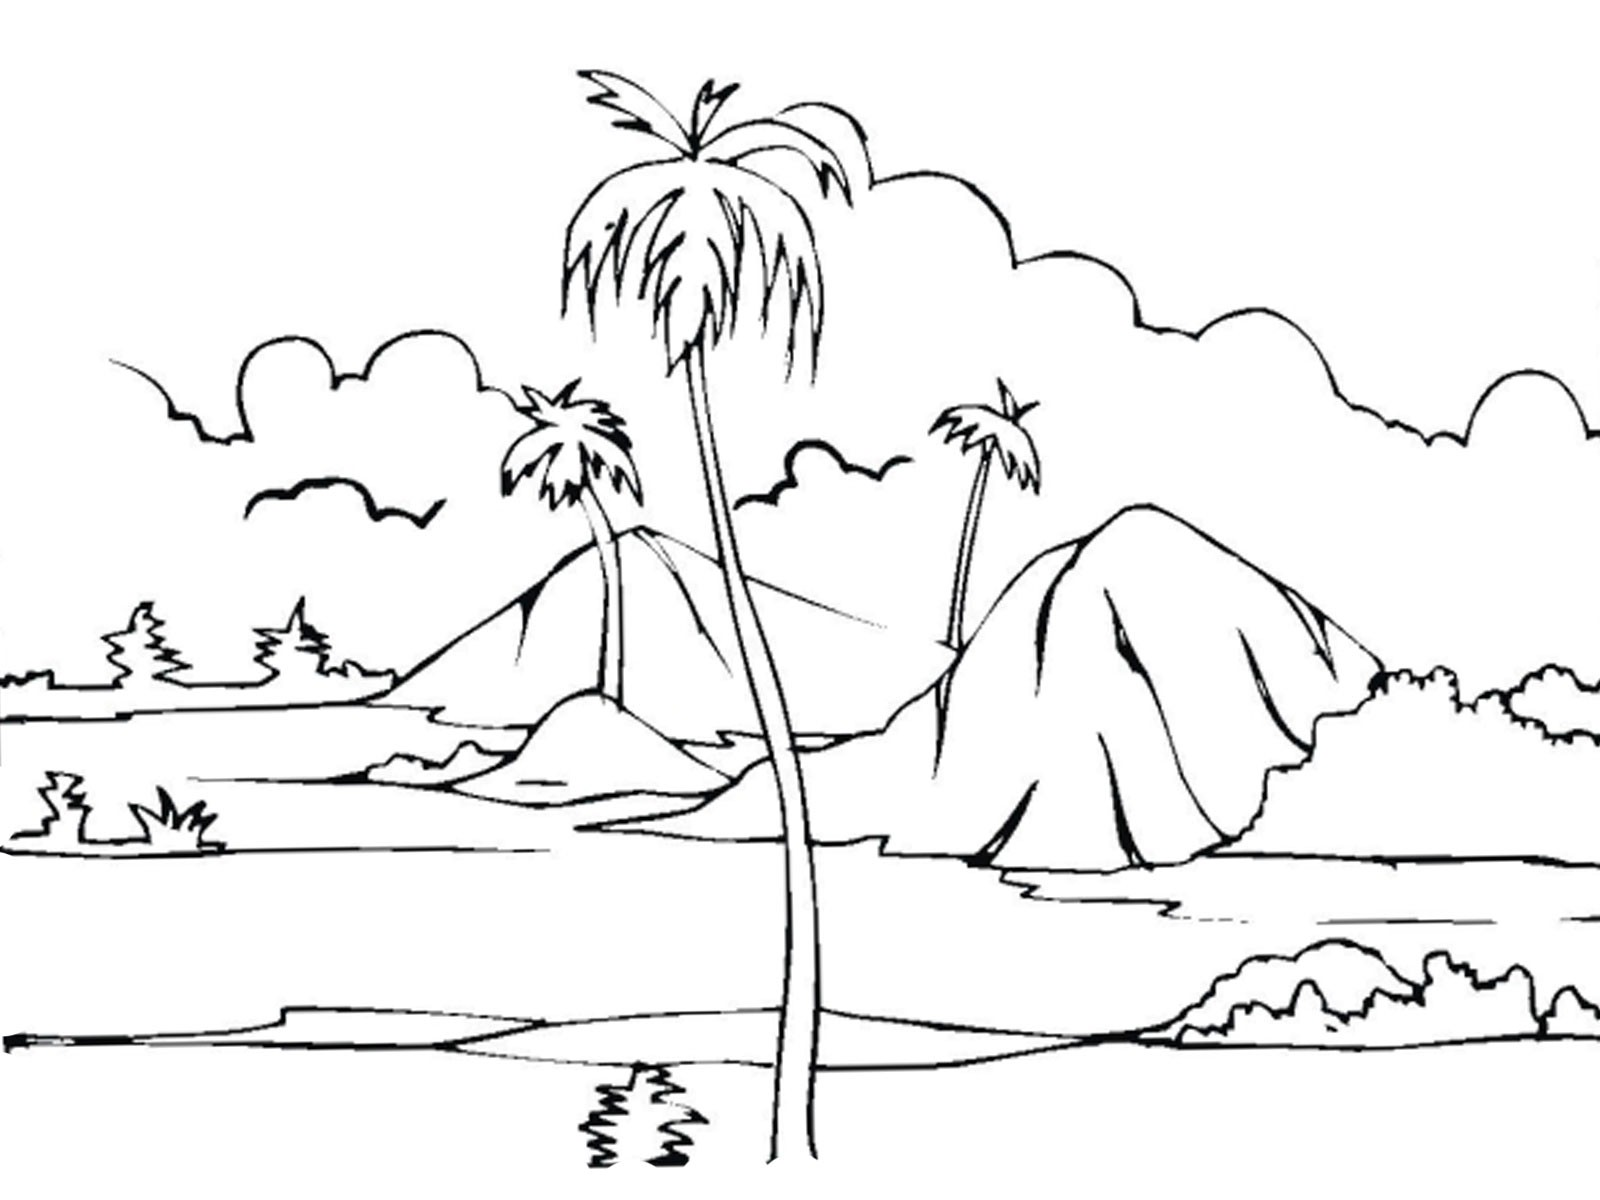 coloring for kids nature nature coloring pages cute coloring pages coloring nature kids coloring for